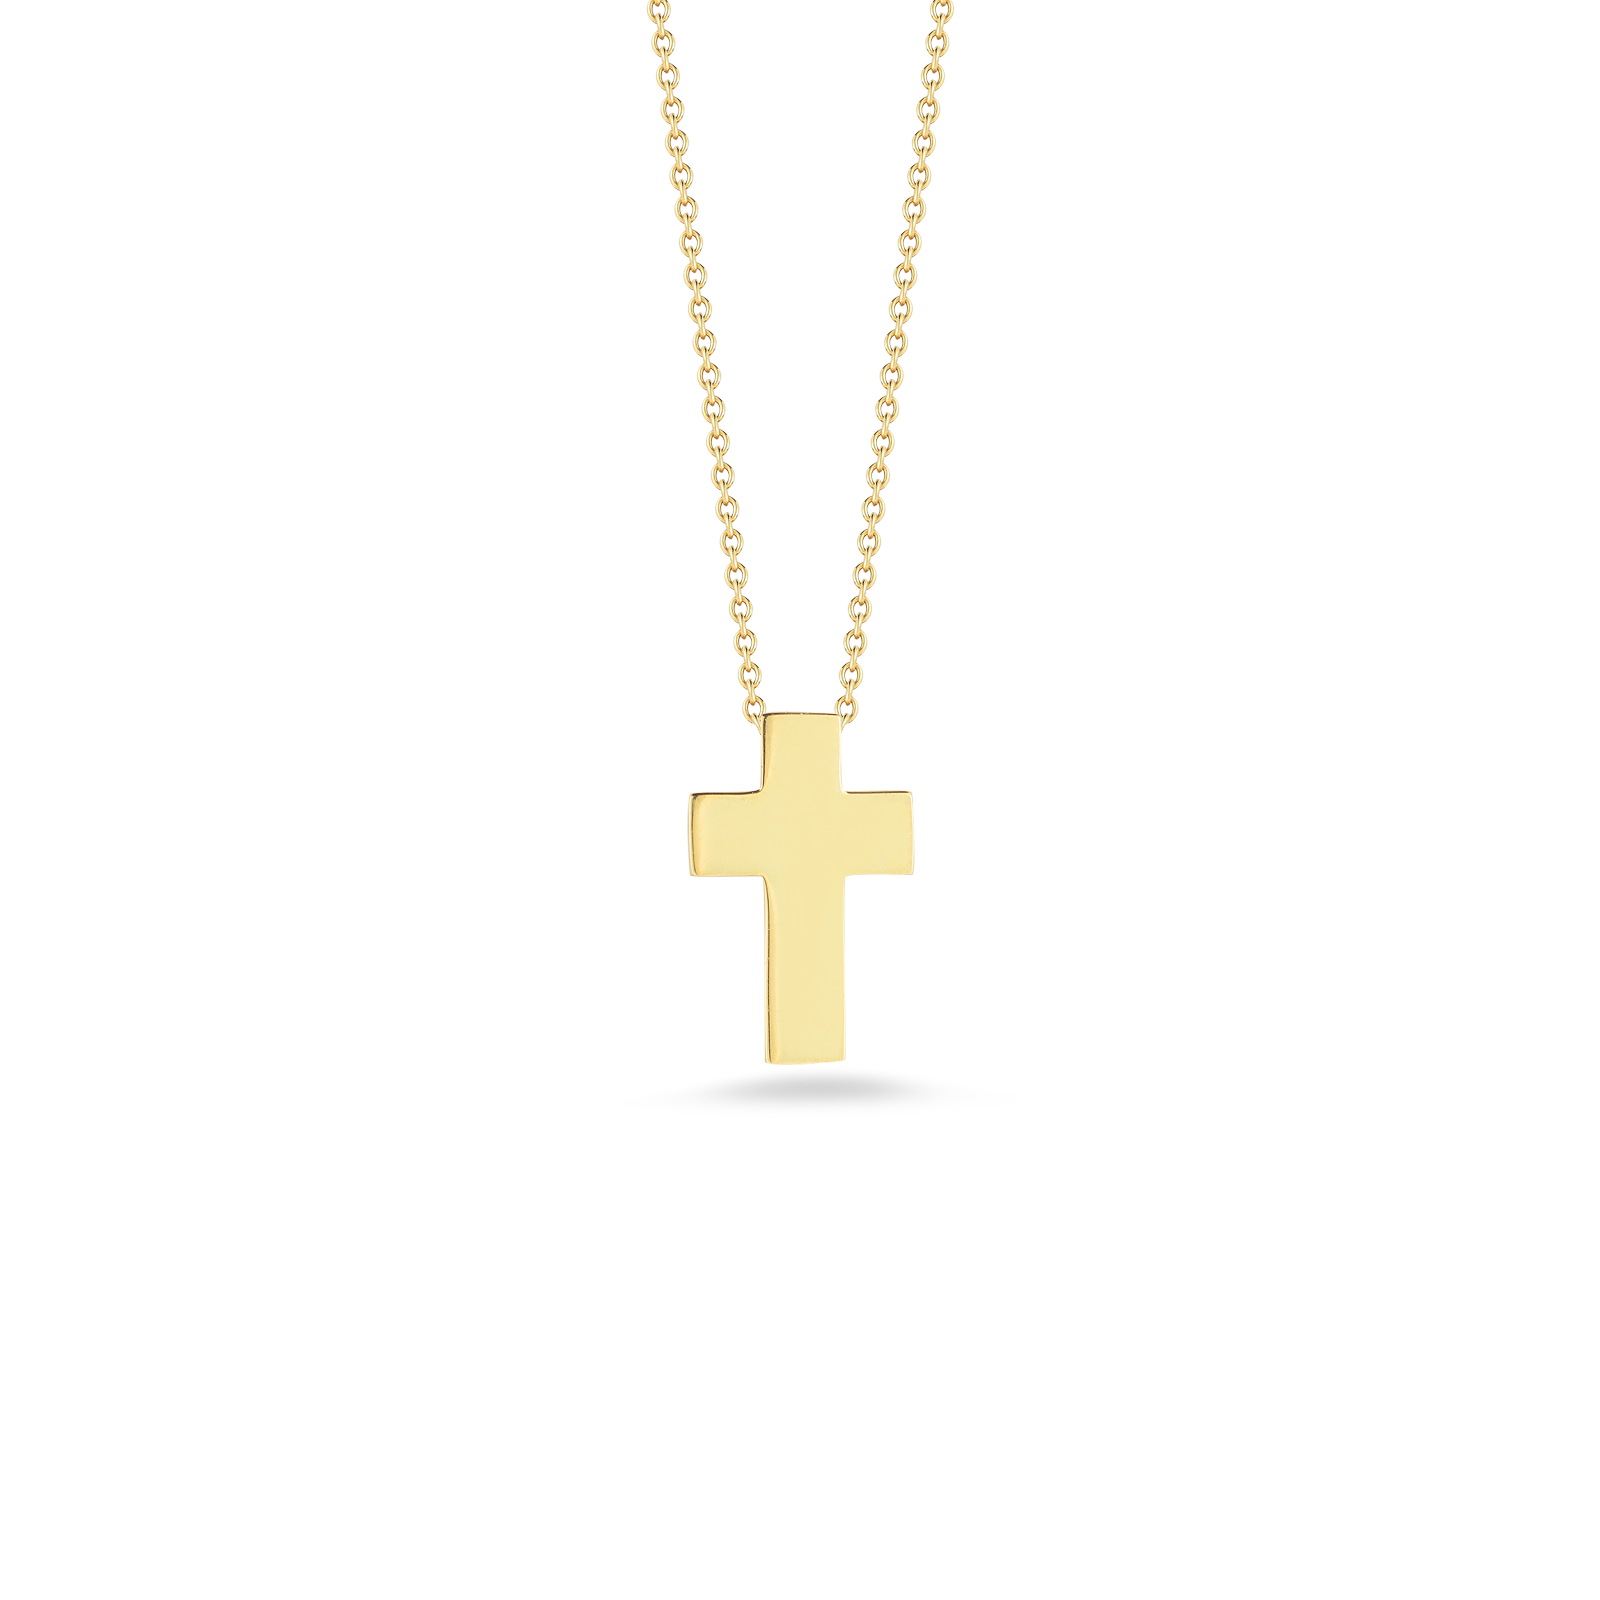 Cross necklace png. Italian gold pendant for